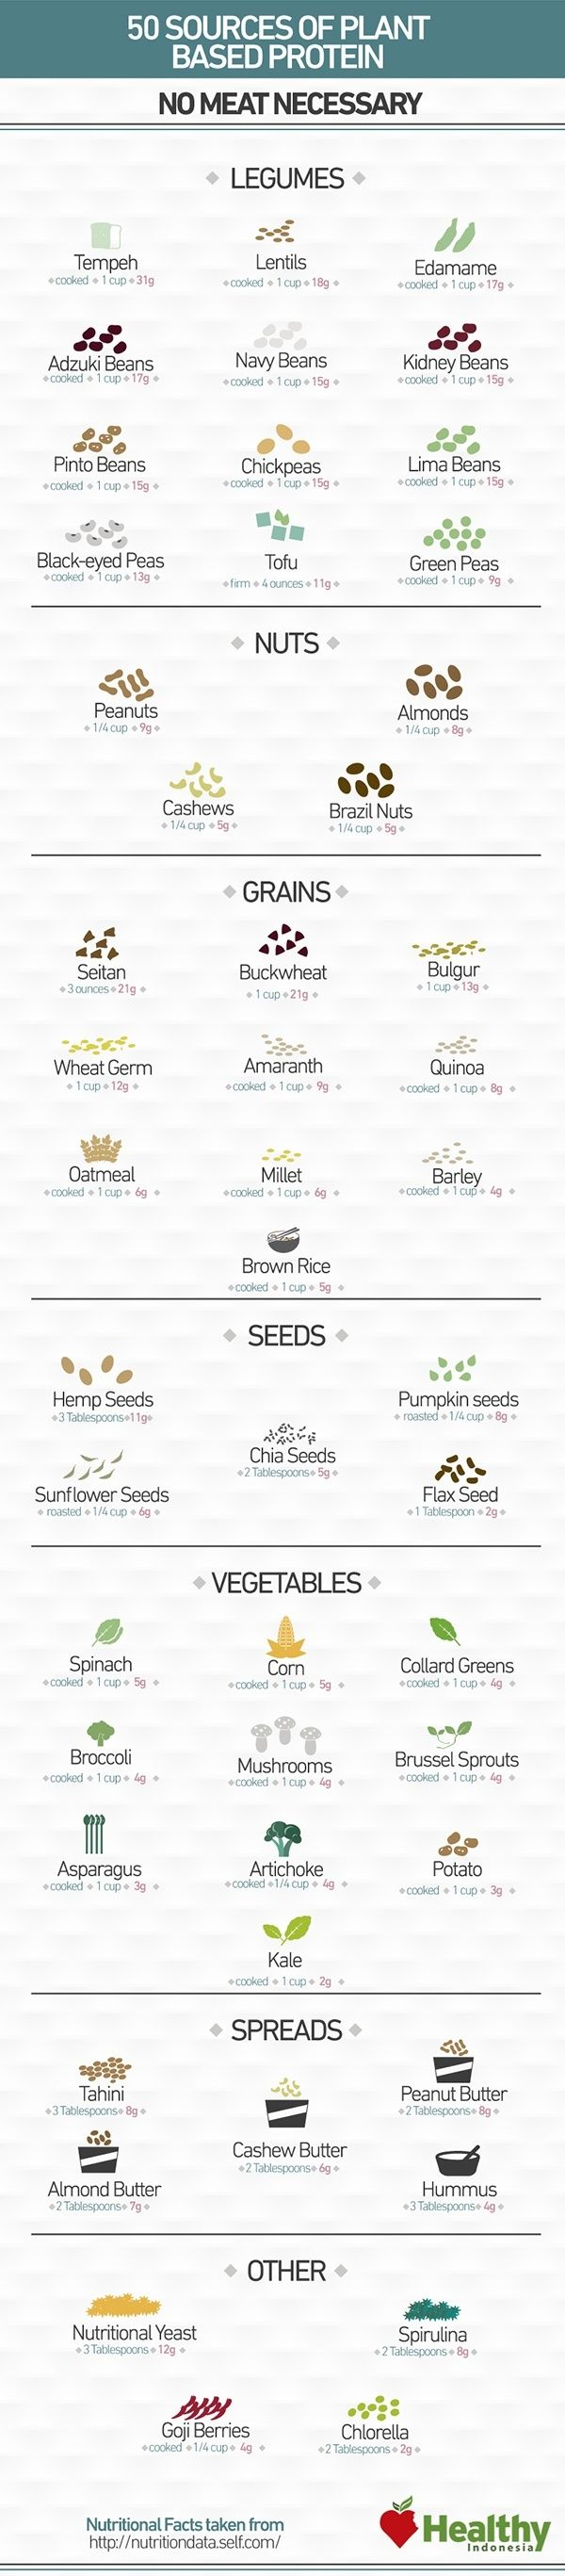 Vegan Protein Options.